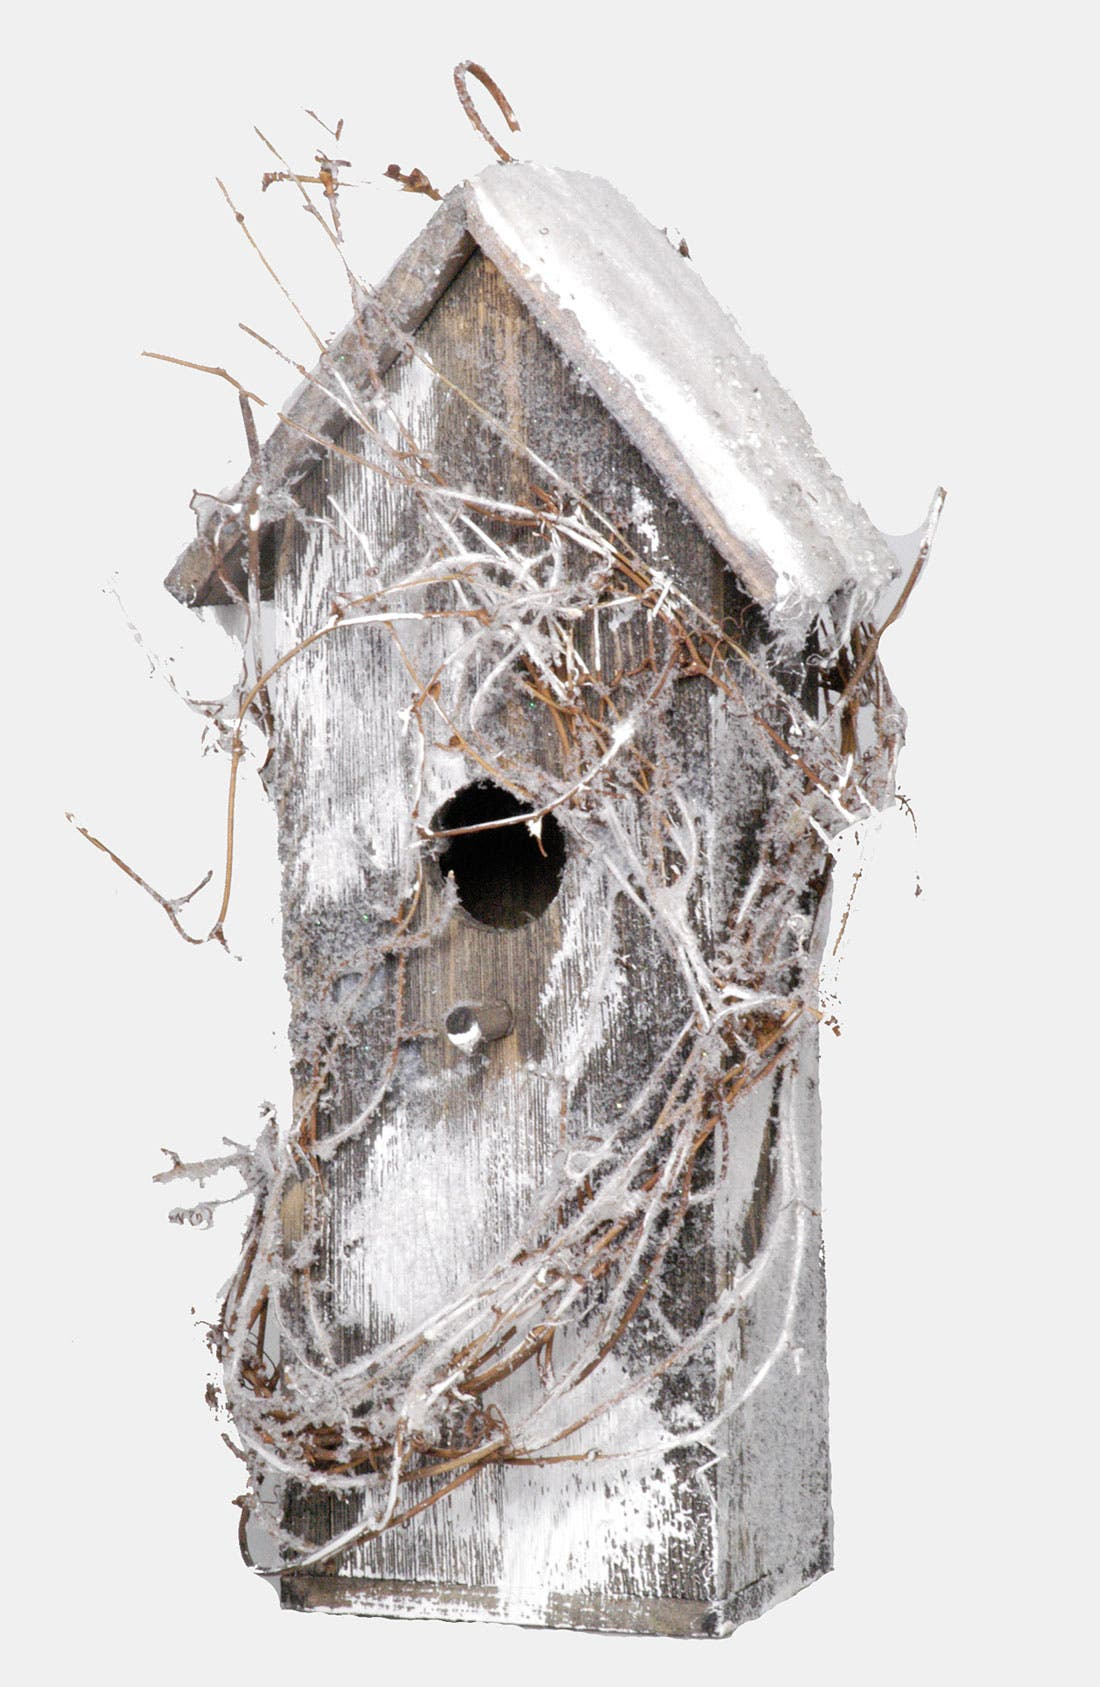 Alternate Image 1 Selected - Fantastic Craft 'Snow Birdhouse - Medium' Decoration